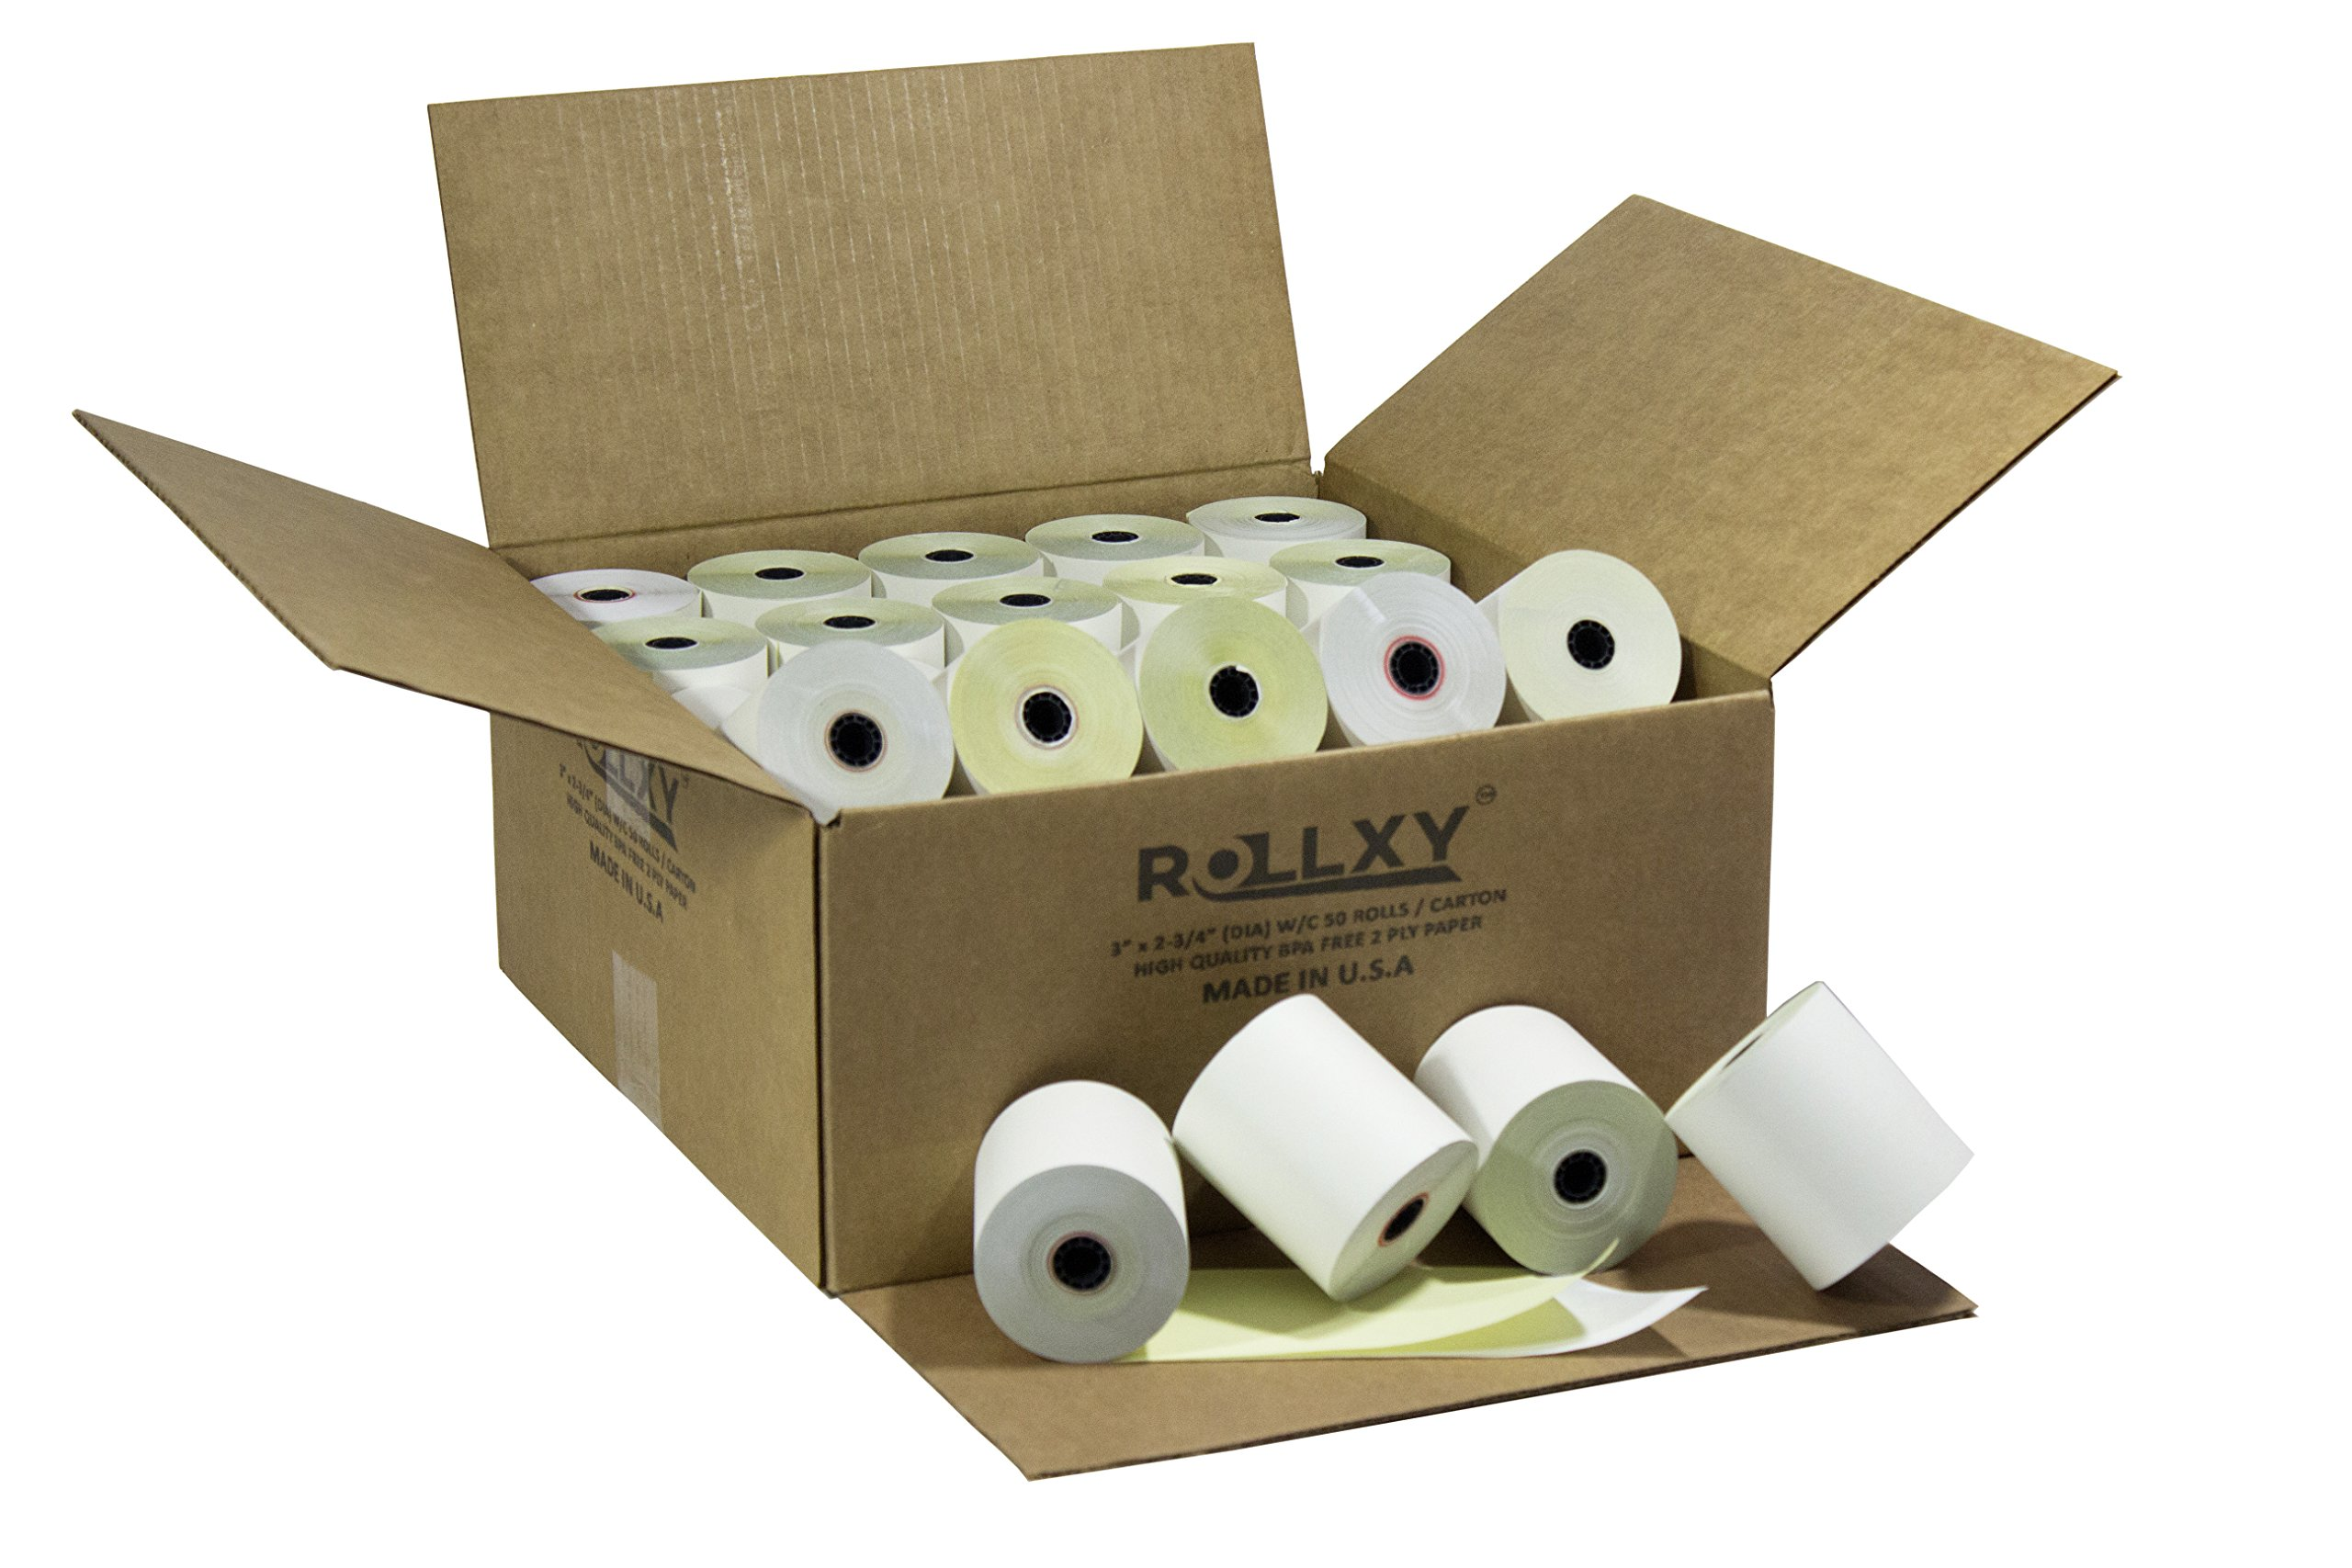 50 Rolls 3'' x 95' 2-Ply Carbonless White/Canary Cash Register Paper for Epson M119 Hypercom T77F (Impact Printer) NCR 7445-1000 Samsung SRP-100